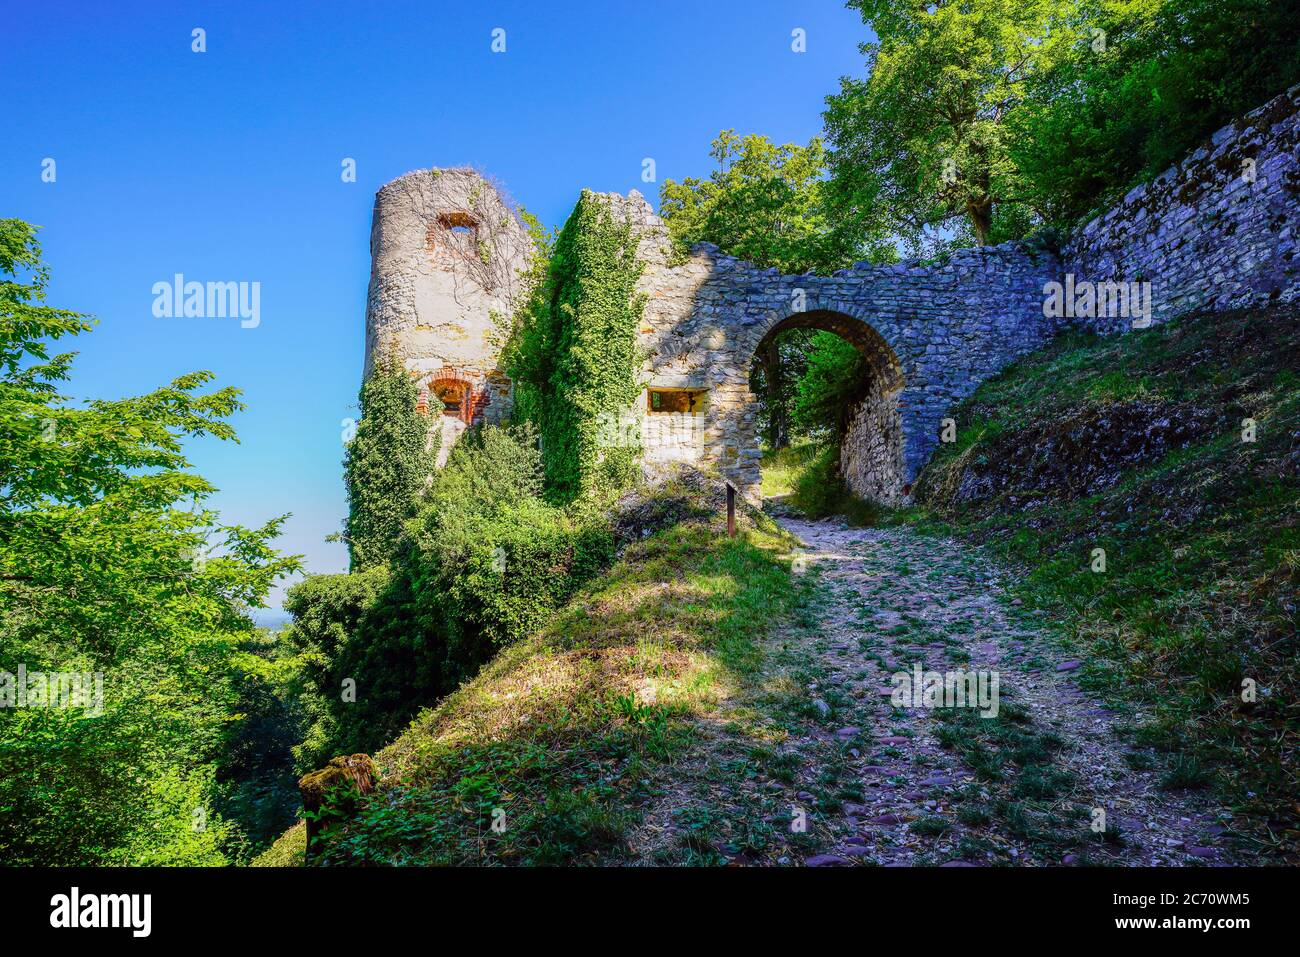 Gate to castle ruins in Ferrette, commune in the Haut-Rhin department in Alsace in north-eastern France. Stock Photo